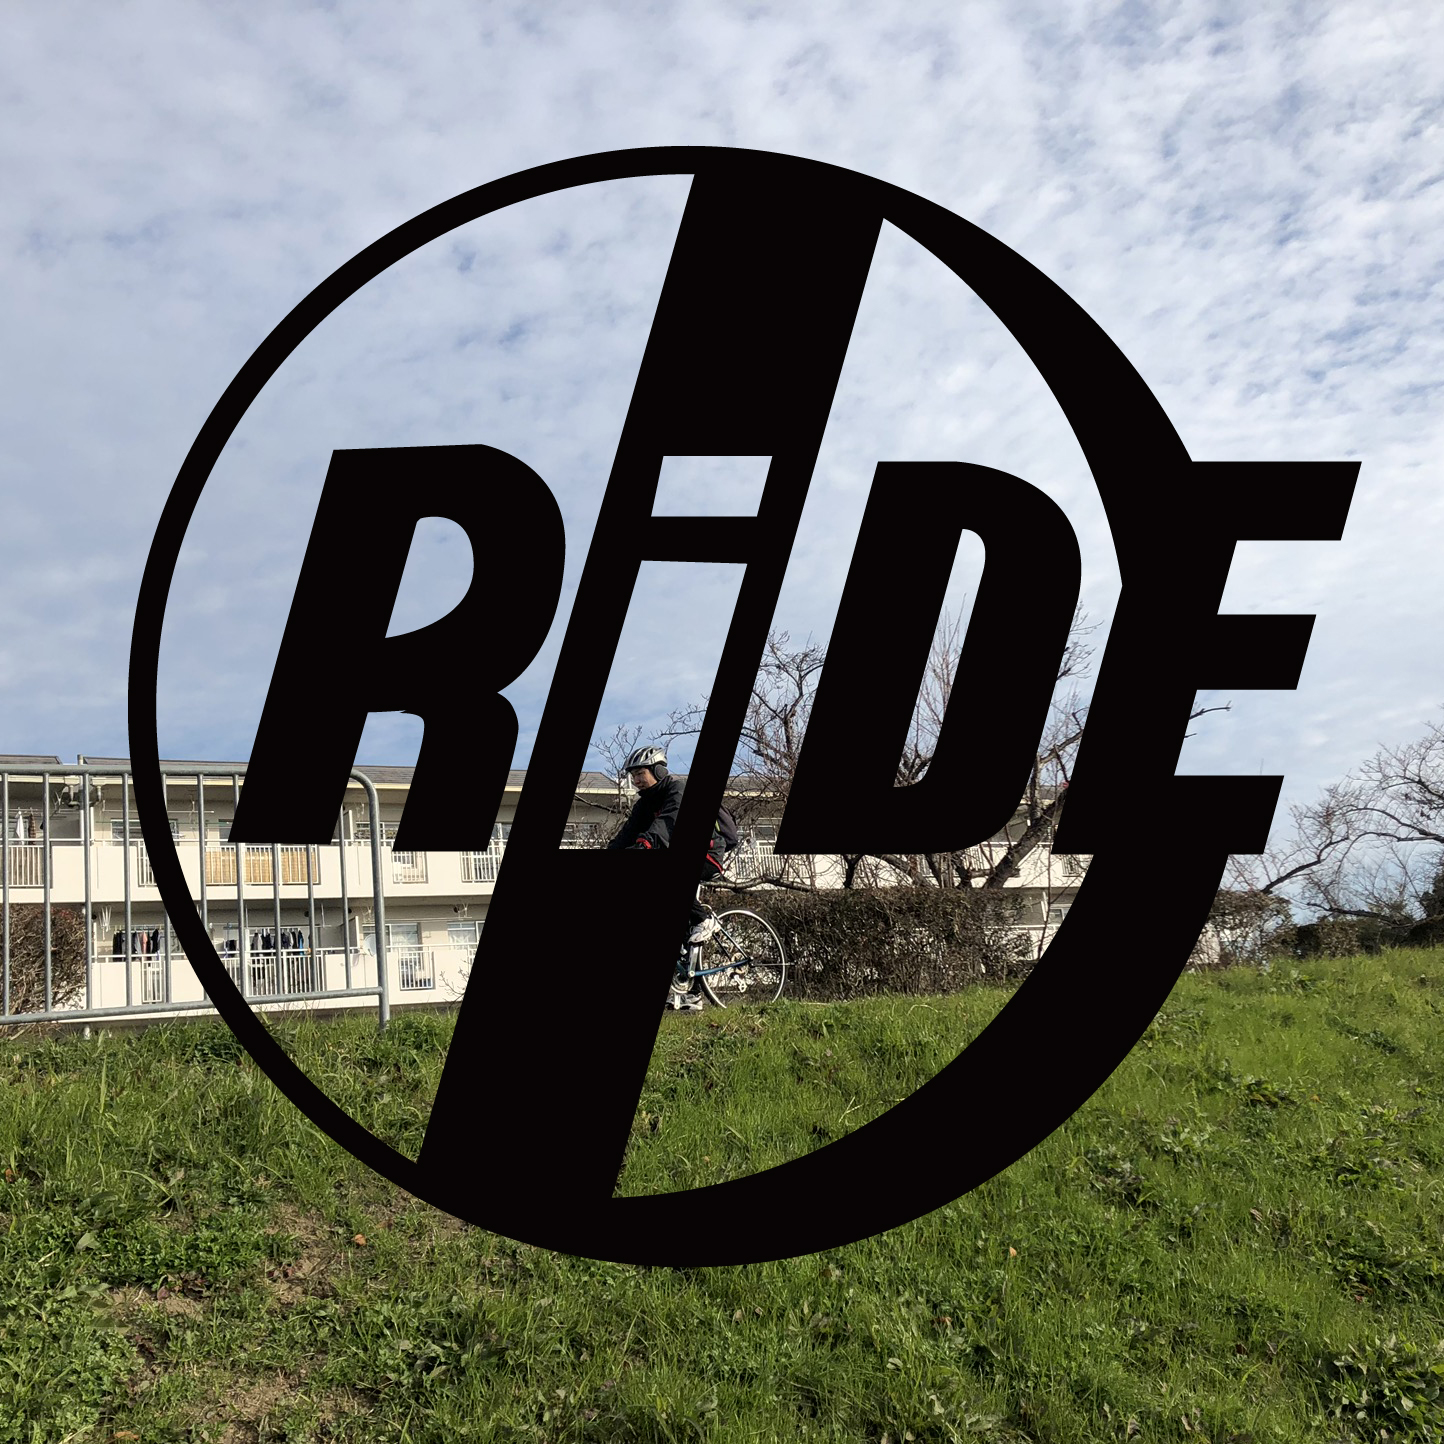 『RIDE』vol.2 「茨木市から池田城跡遺跡公園へ」